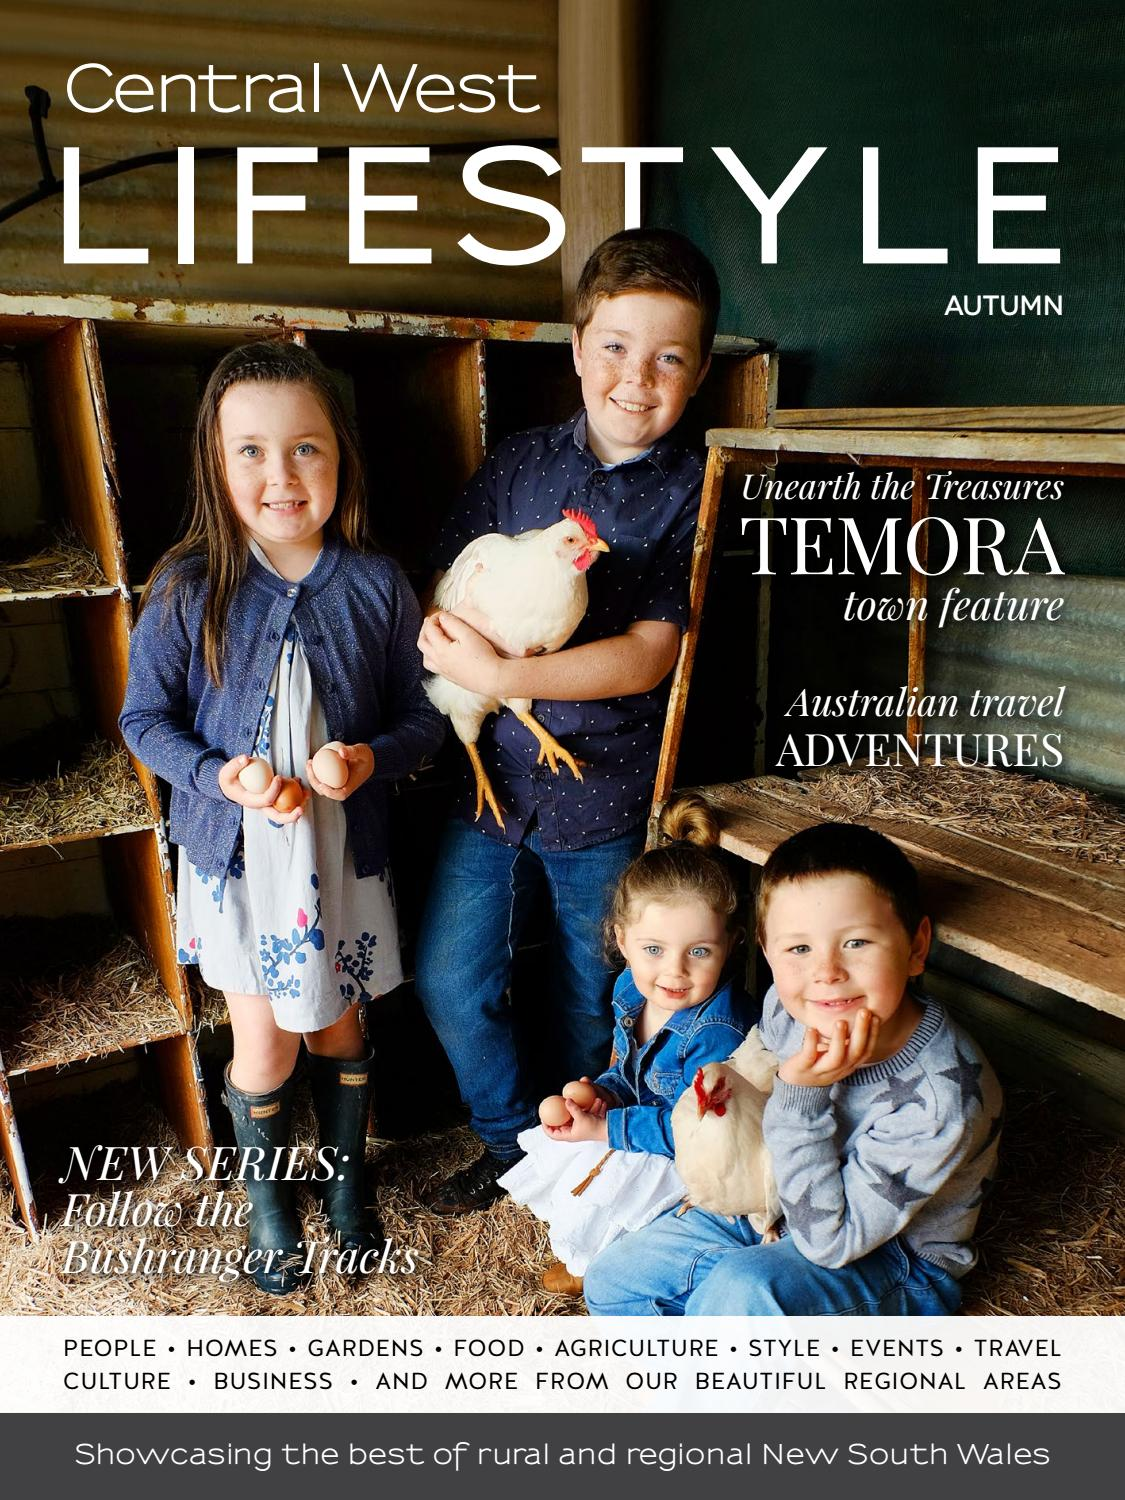 Central west lifestyle autumn 2017 preview issue 16 by central central west lifestyle autumn 2017 preview issue 16 by central west lifestyle magazine issuu kristyandbryce Gallery